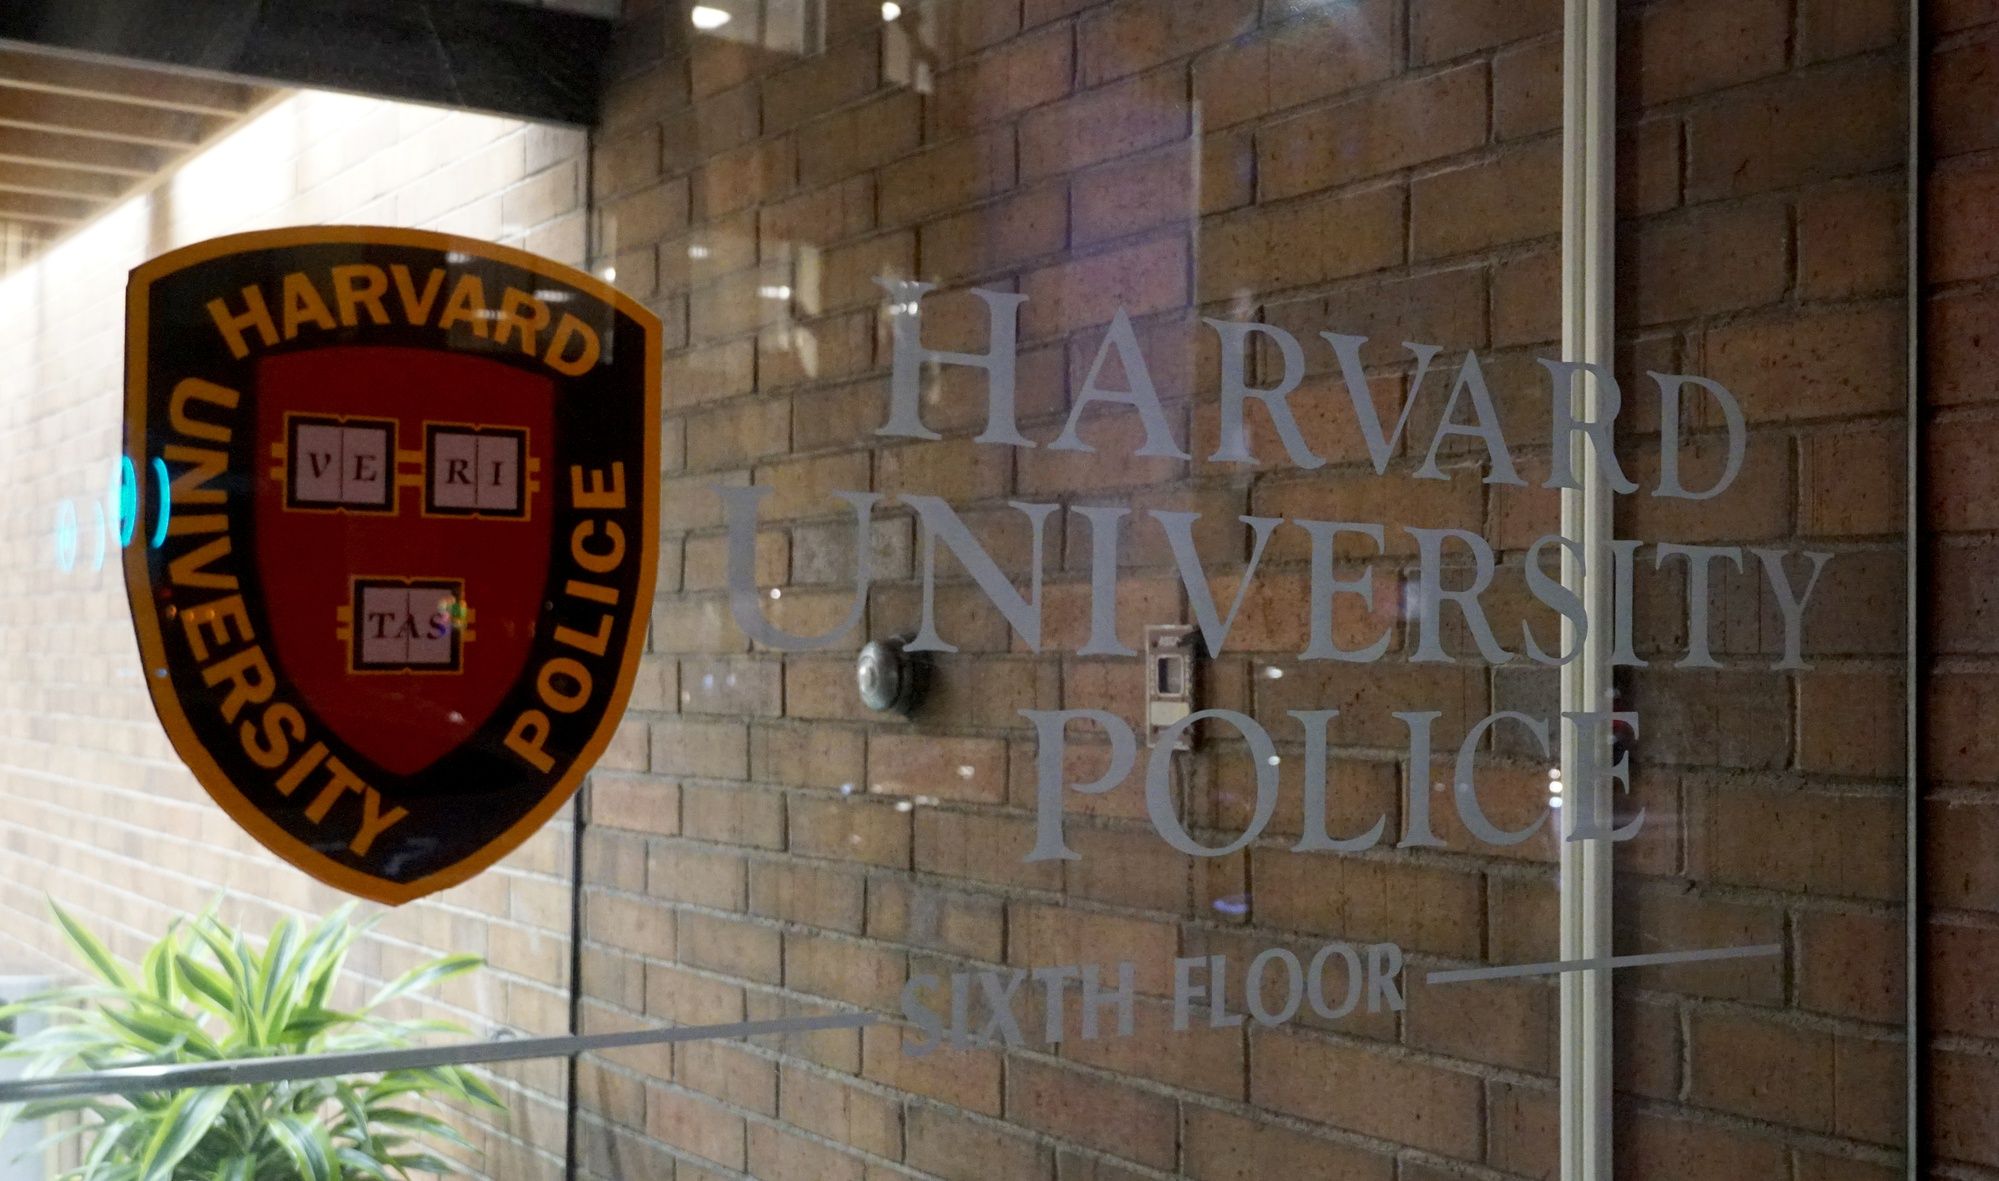 Cambridge Police have occasionally been called to assist Harvard University Police within Harvard's jurisdiction.